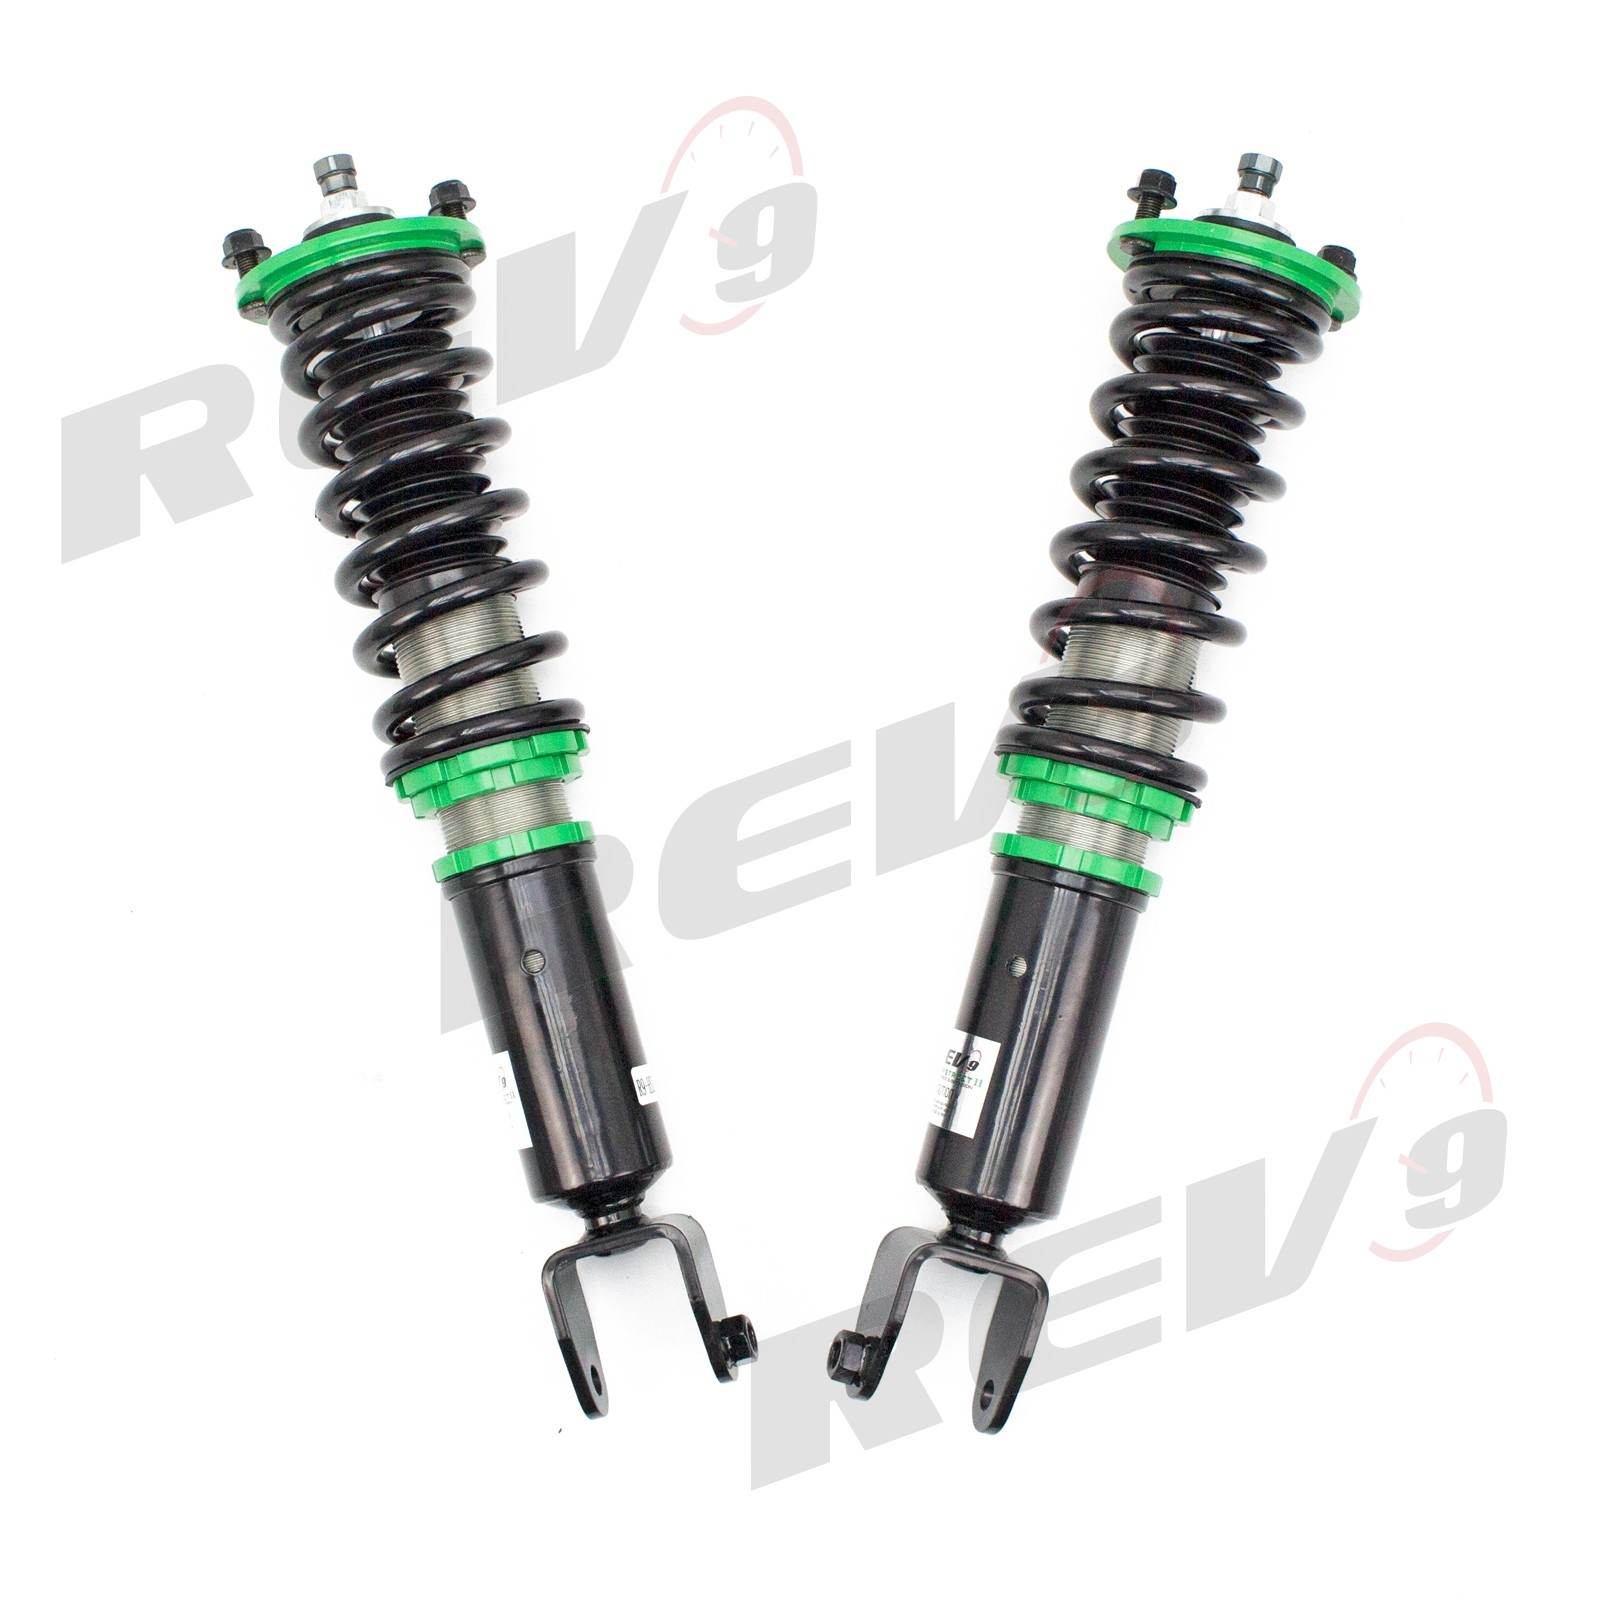 R9-HS2-038_1 Hyper-Street 2 Coilover Suspension Lowering